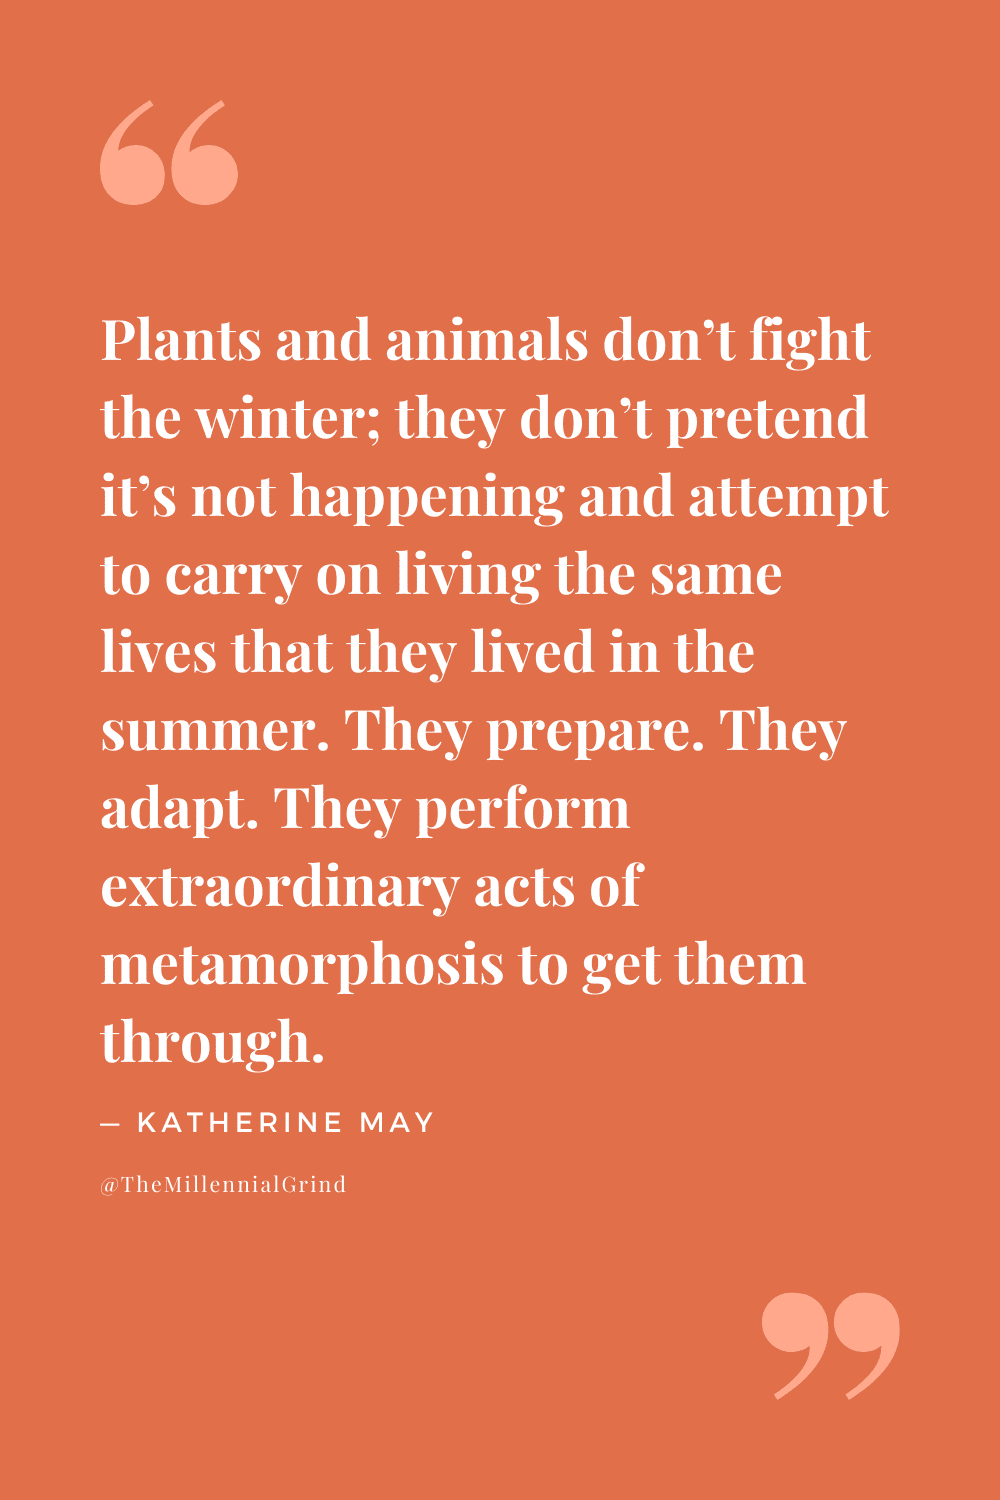 Quotes From Wintering by Katherine May